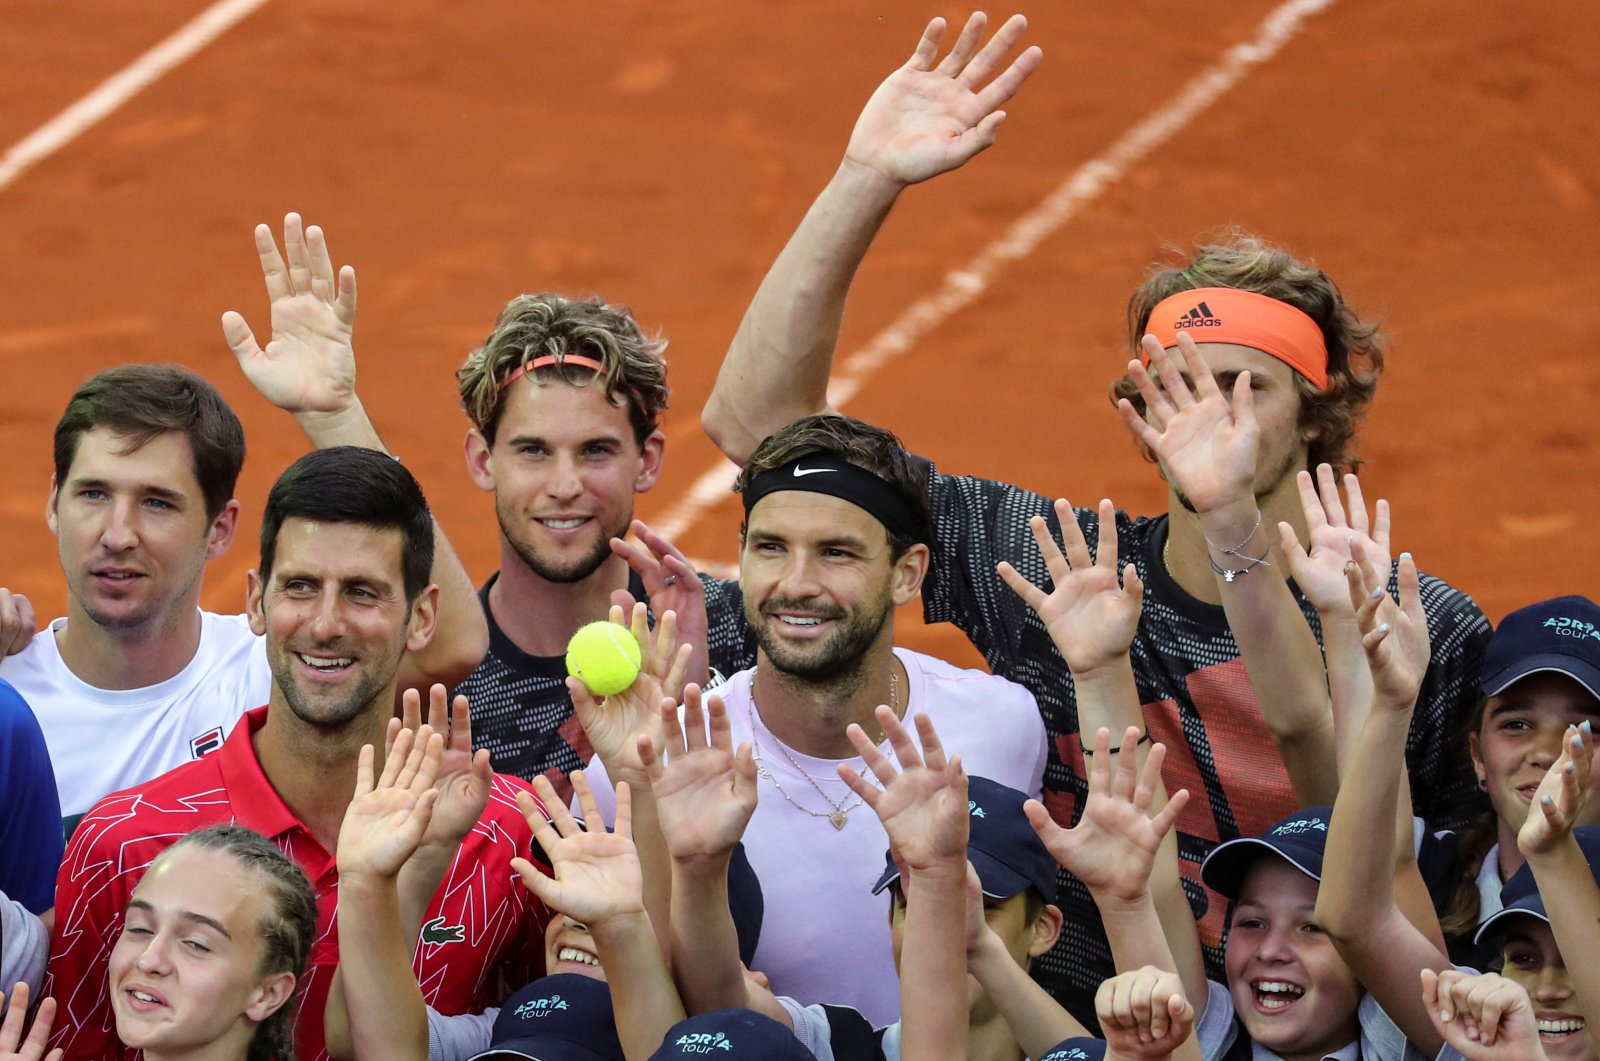 From left to right: Dusan Lajovic, Novak Djokovic, Dominic Thiem, Grigor Dimitrov and Alexander Zverev pose with ballkids during Adria Tour in Belgrade, Serbia, June 12, 2020. (Reuters Photo)